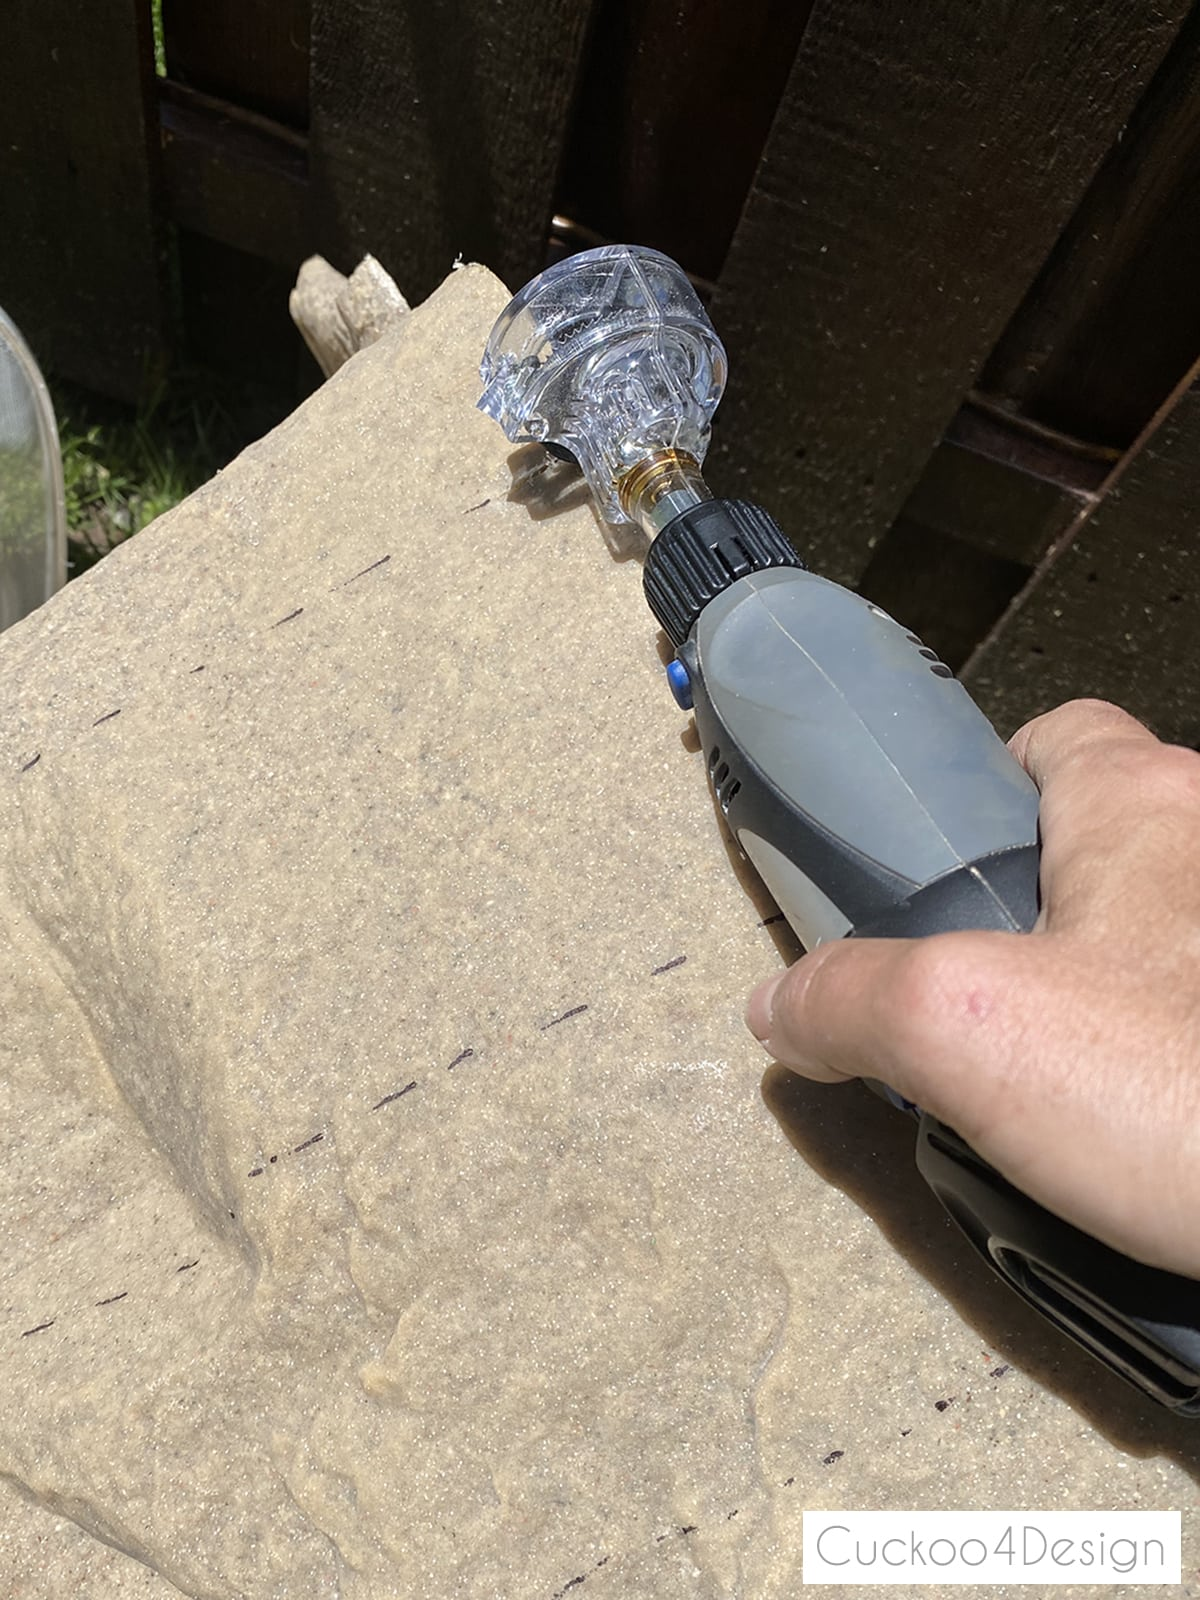 cutting hole into pump cover with Dremel mini saw